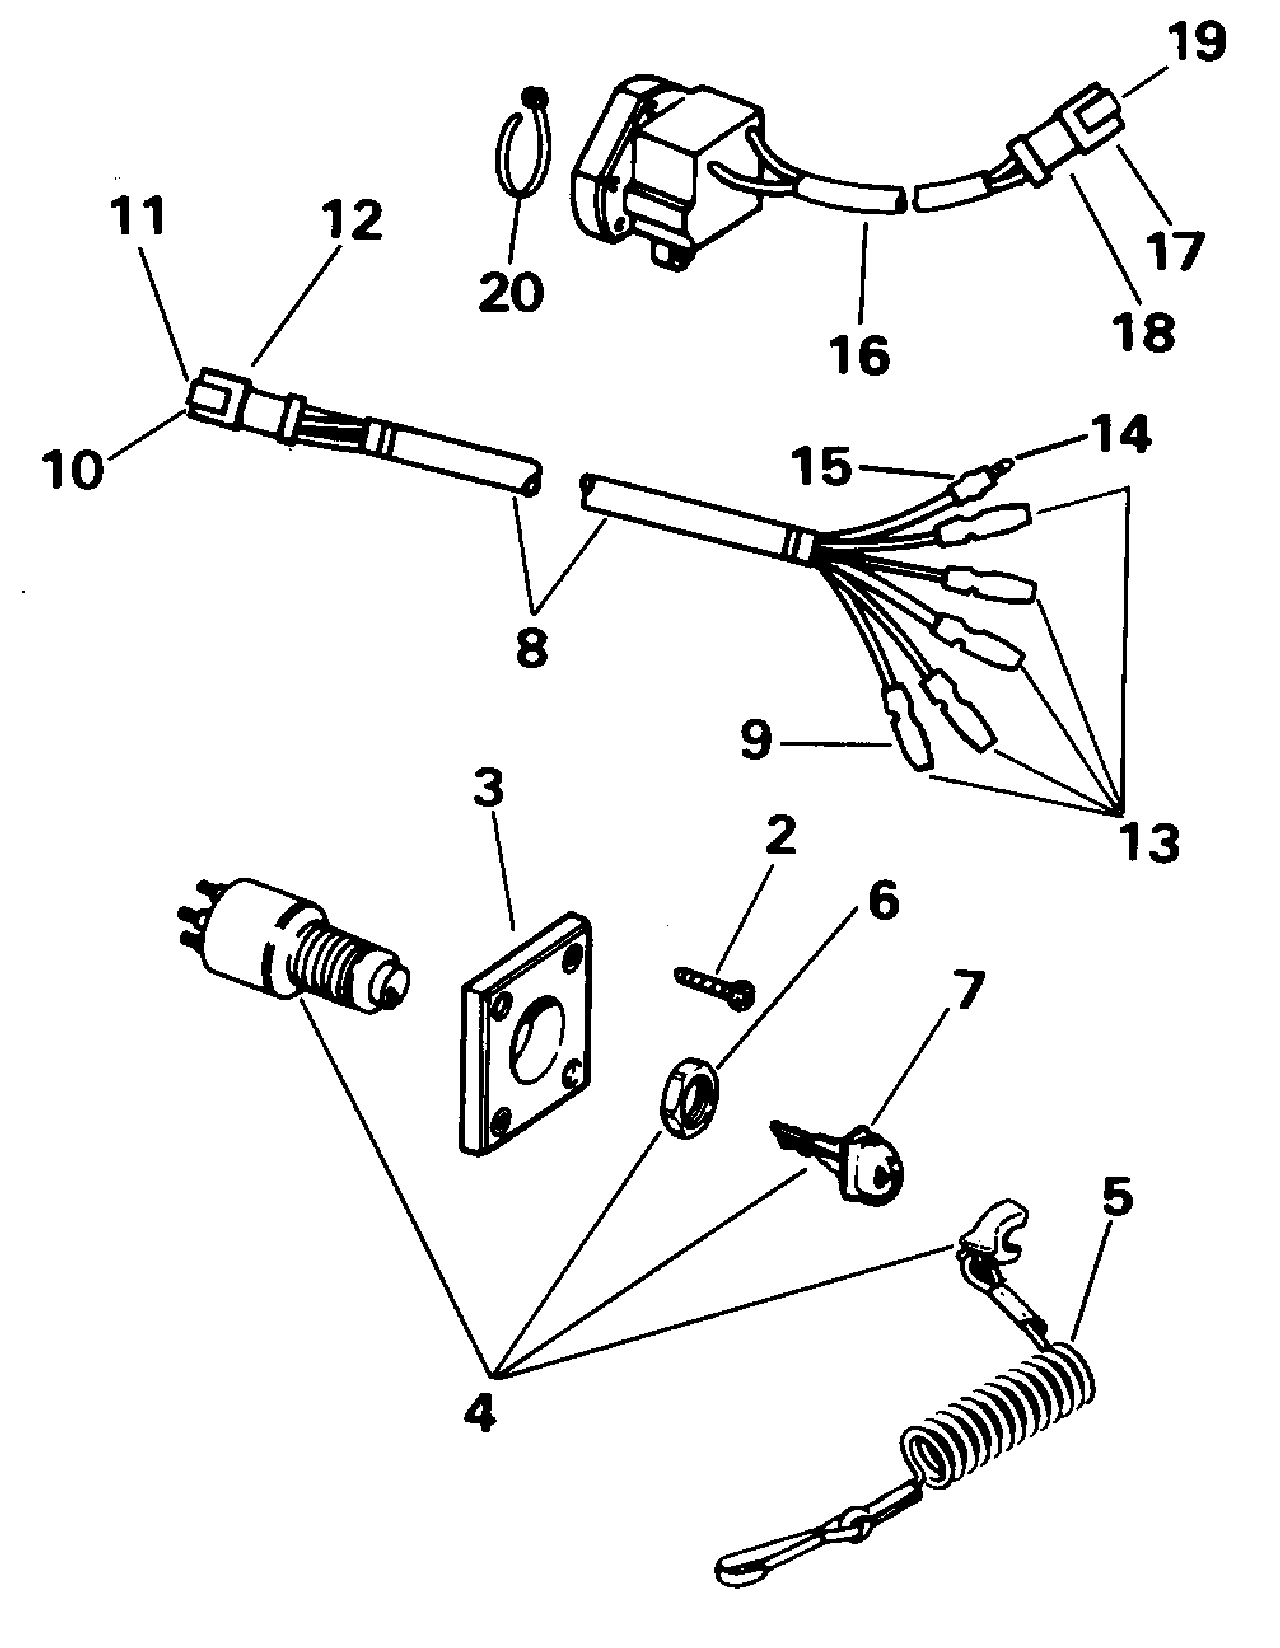 ignition switch wiring diagram on evinrude outboard ignition wiring